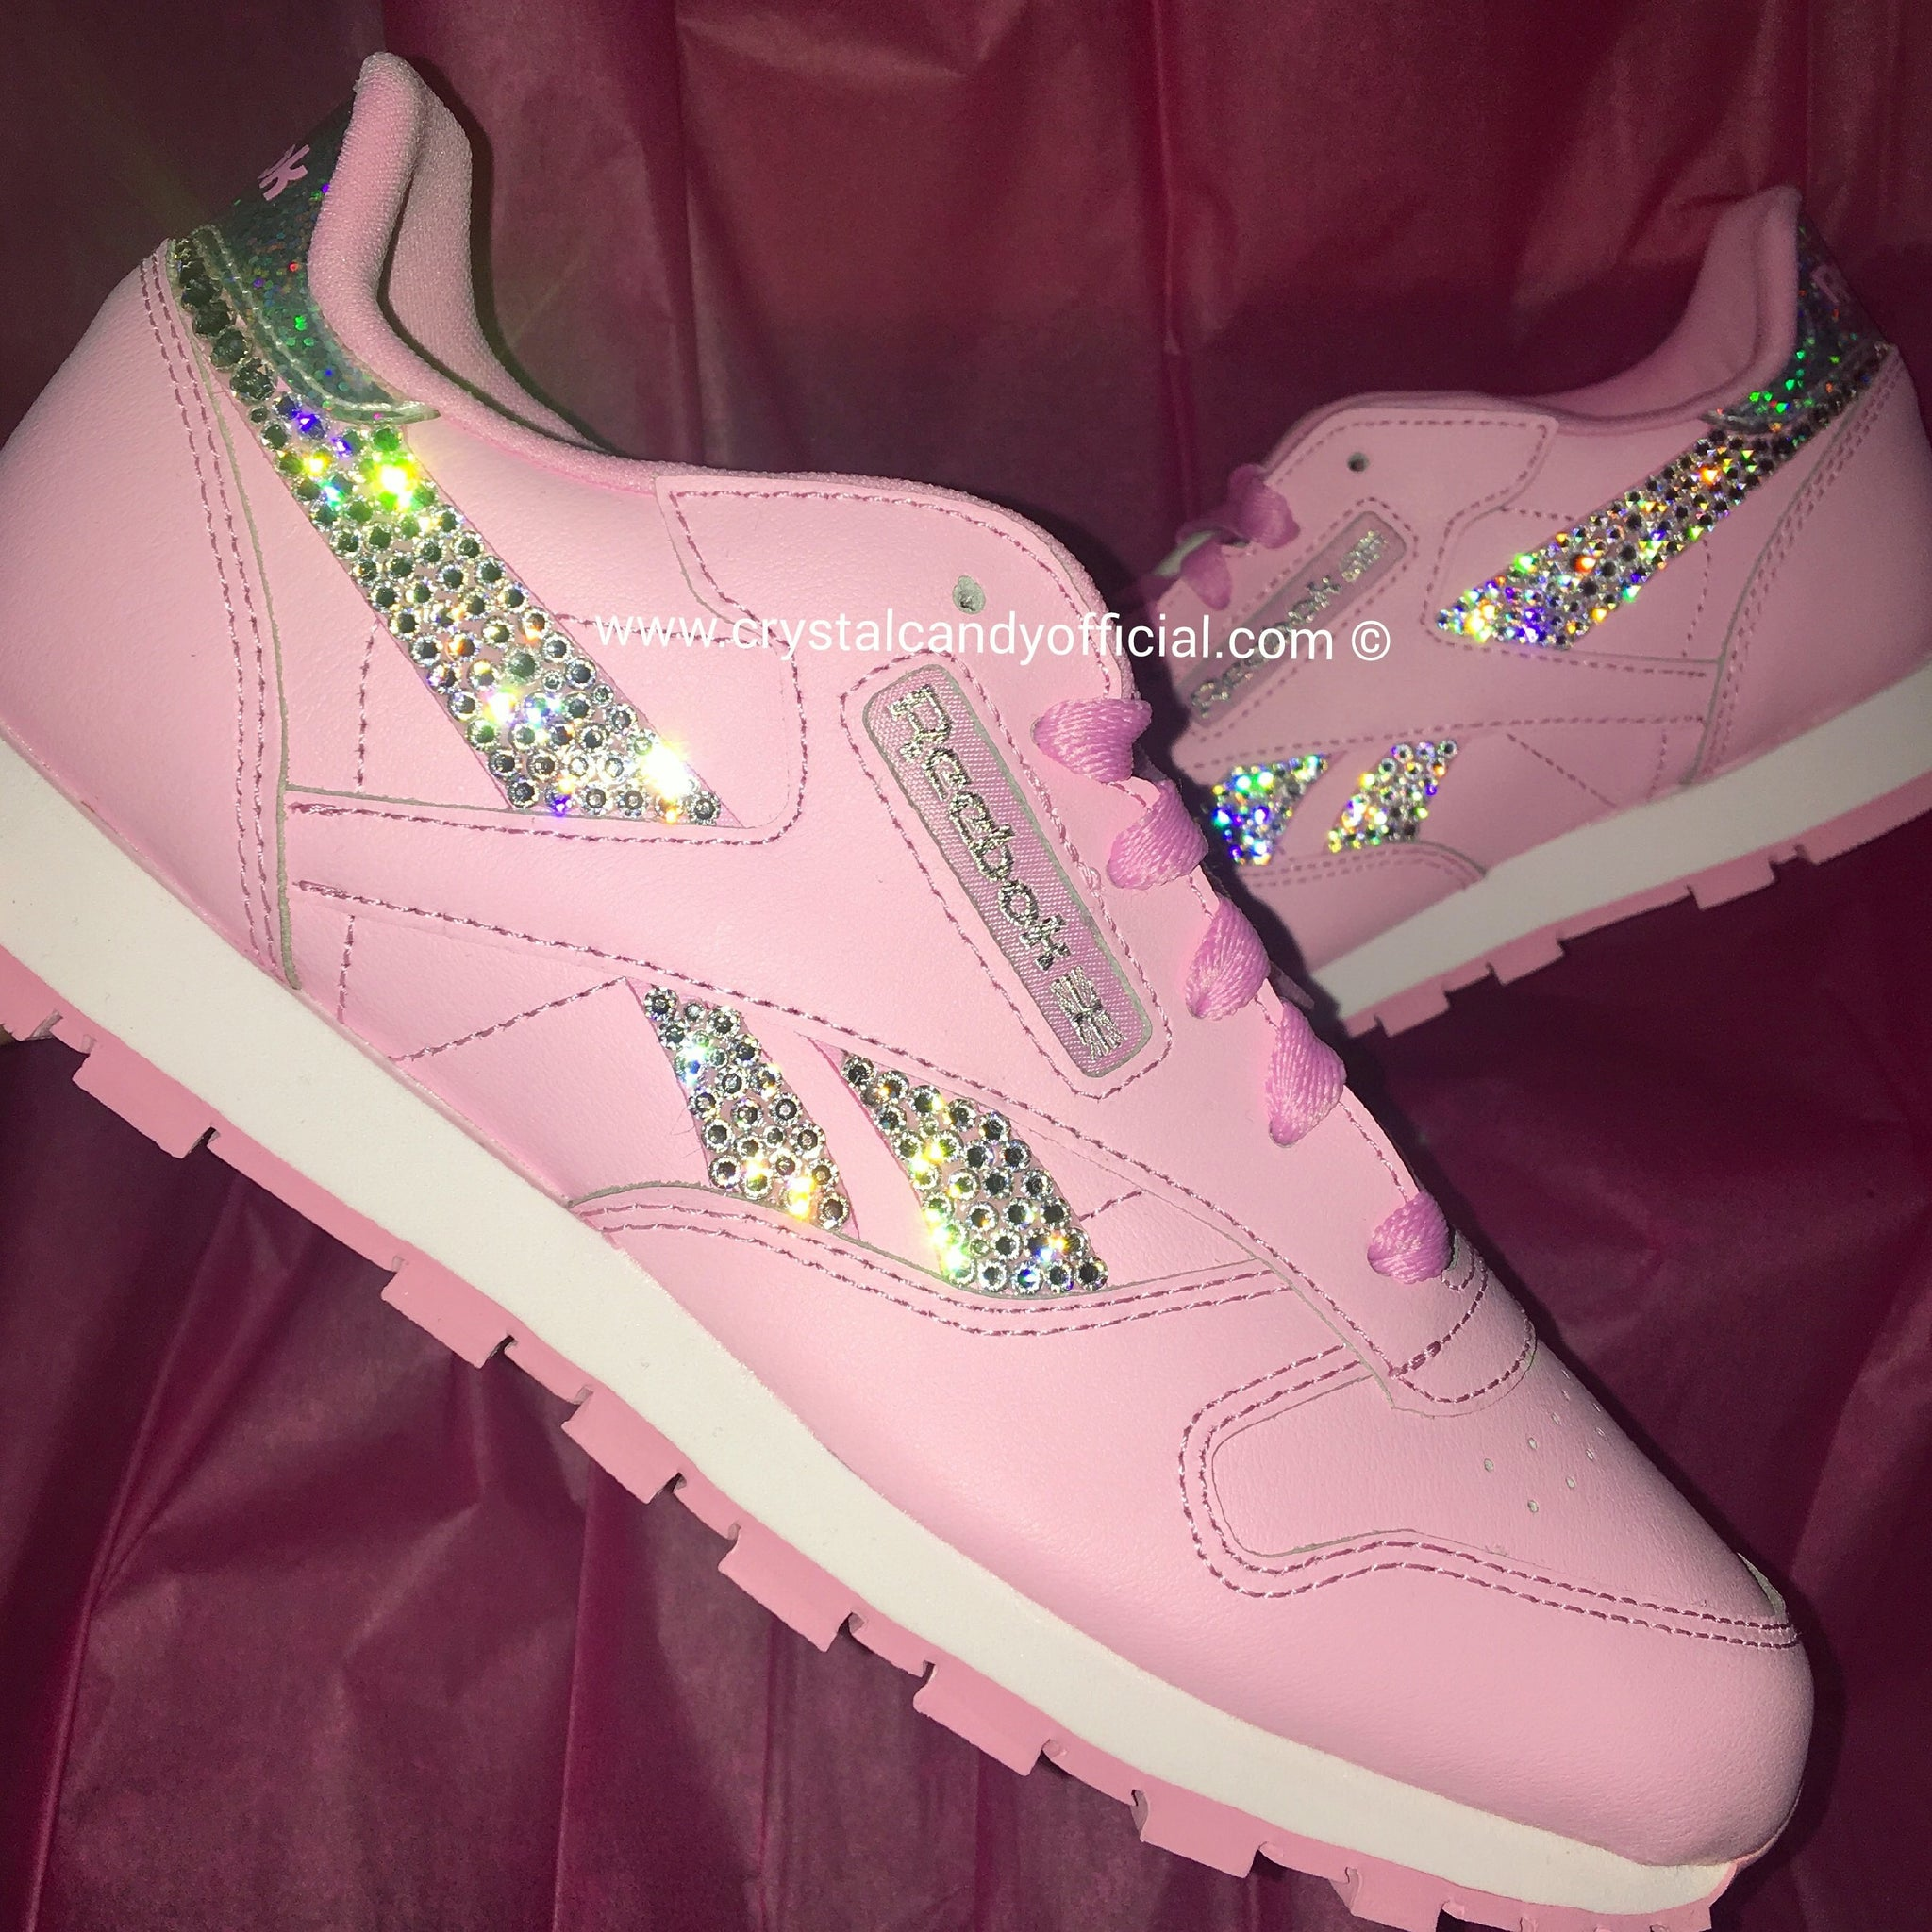 e5c639f111e Crystal Reebok Classic in Baby Pink - Crystal Candy Limited